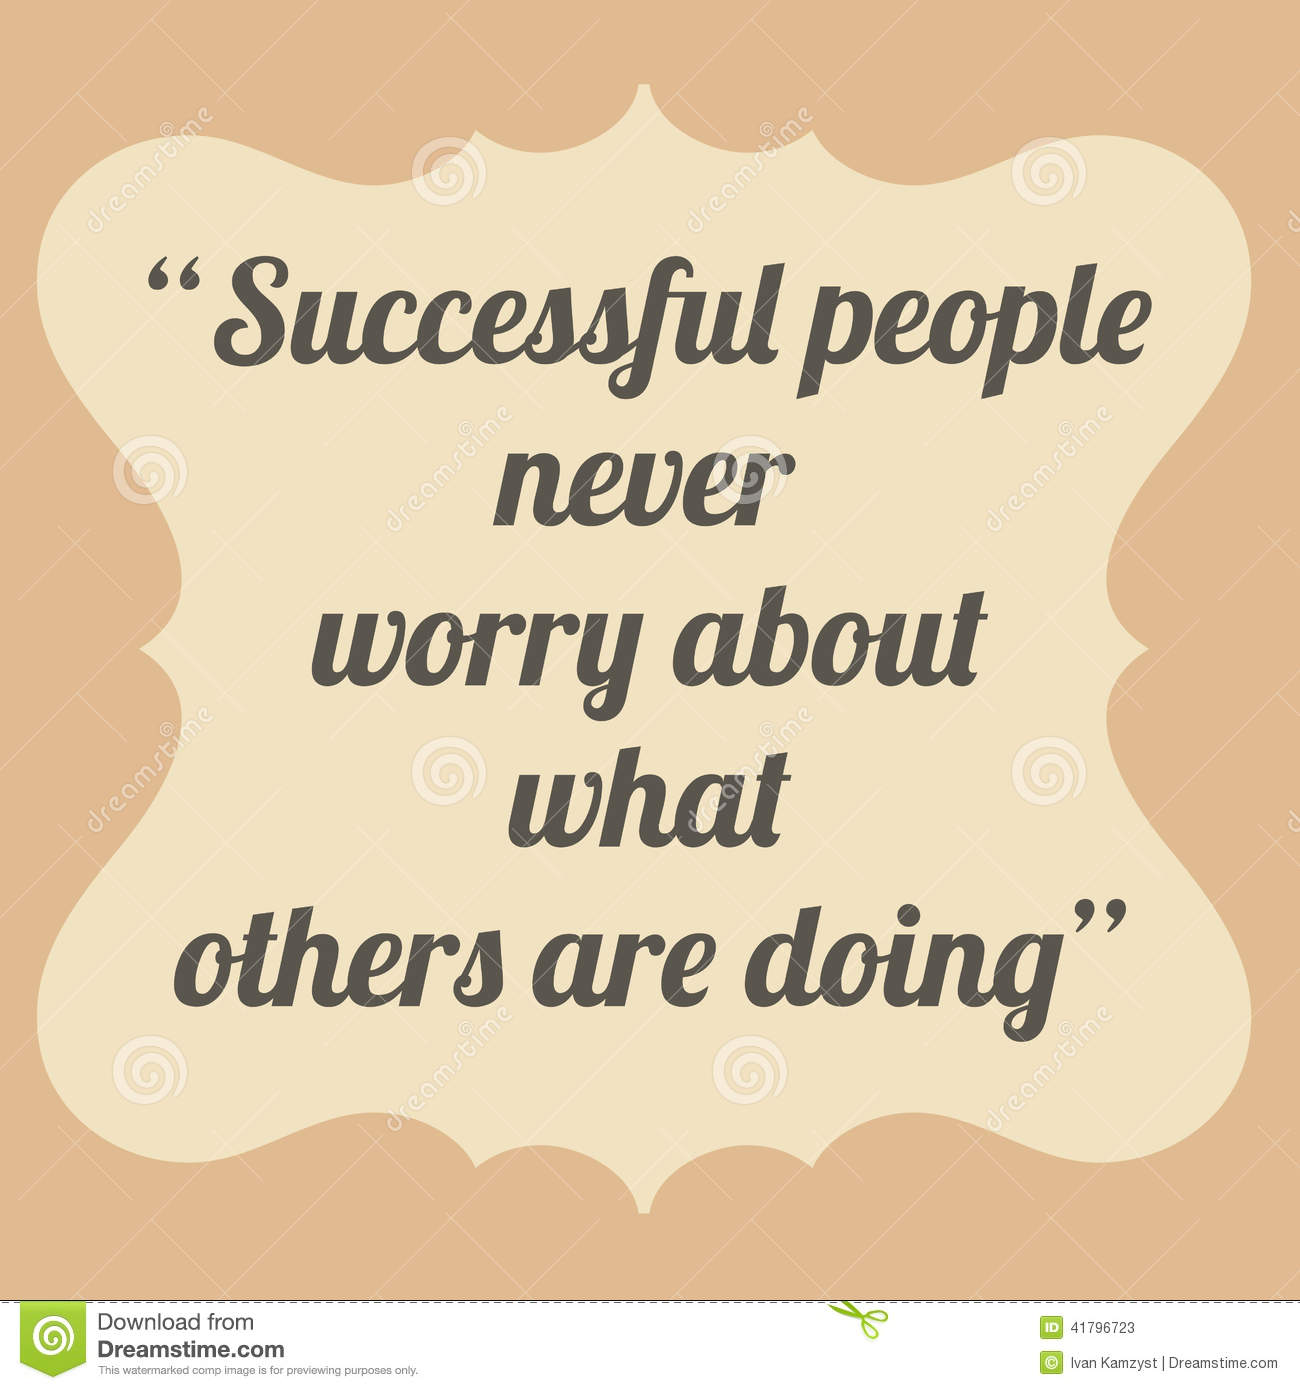 Inspirational Success Pics Download: Successful People Never Worry About What Others Are Doing